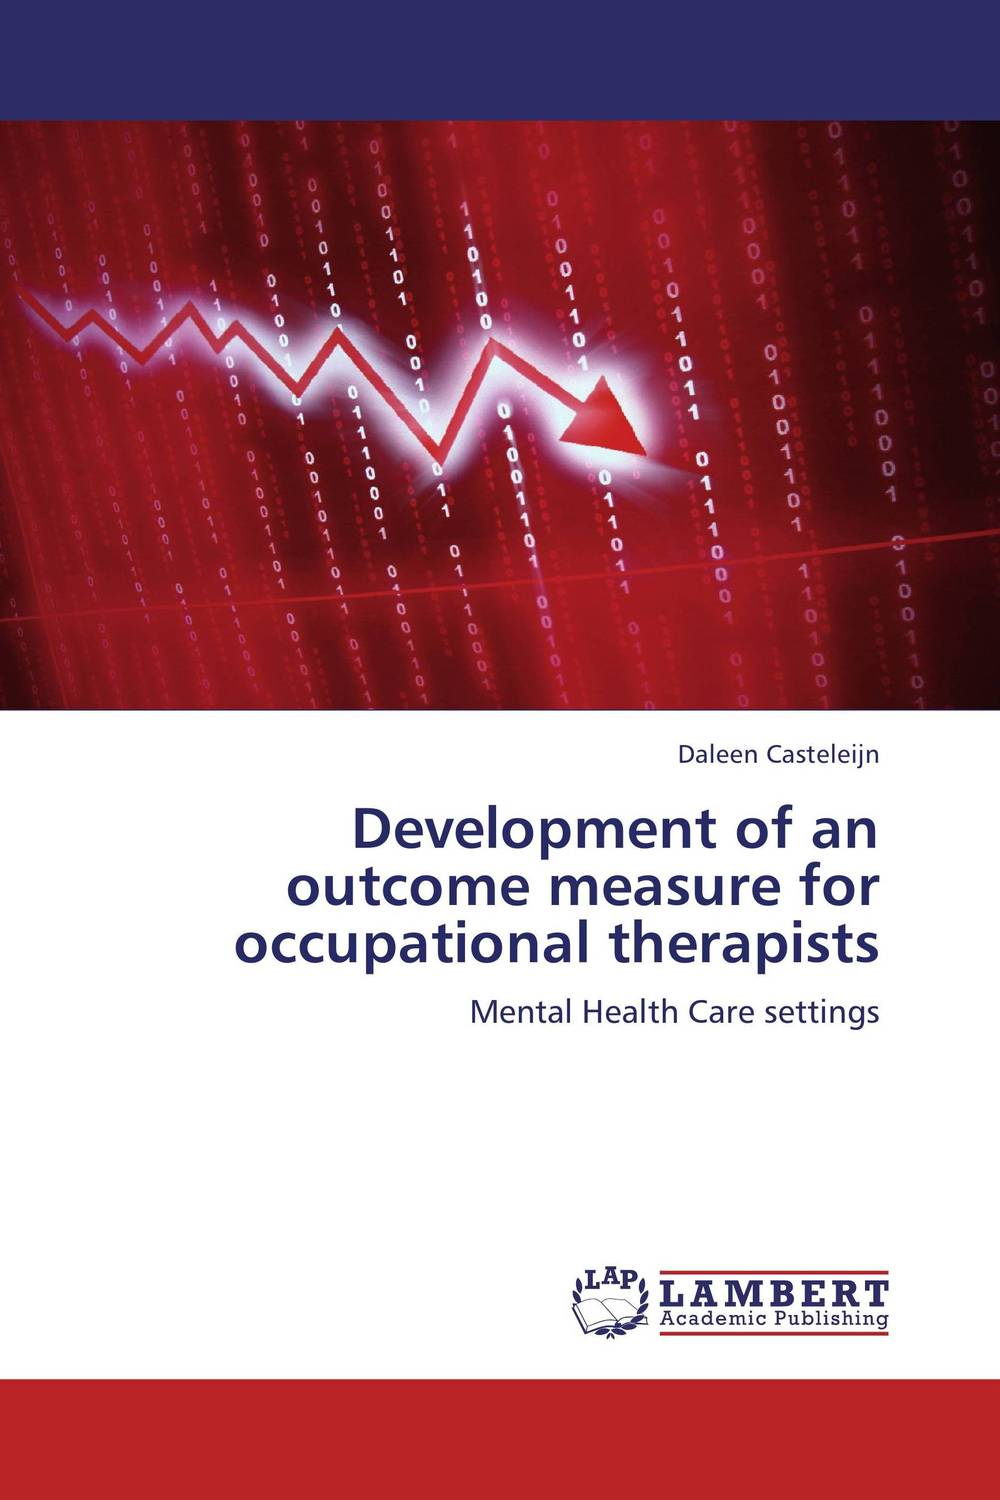 Development of an outcome measure for occupational therapists